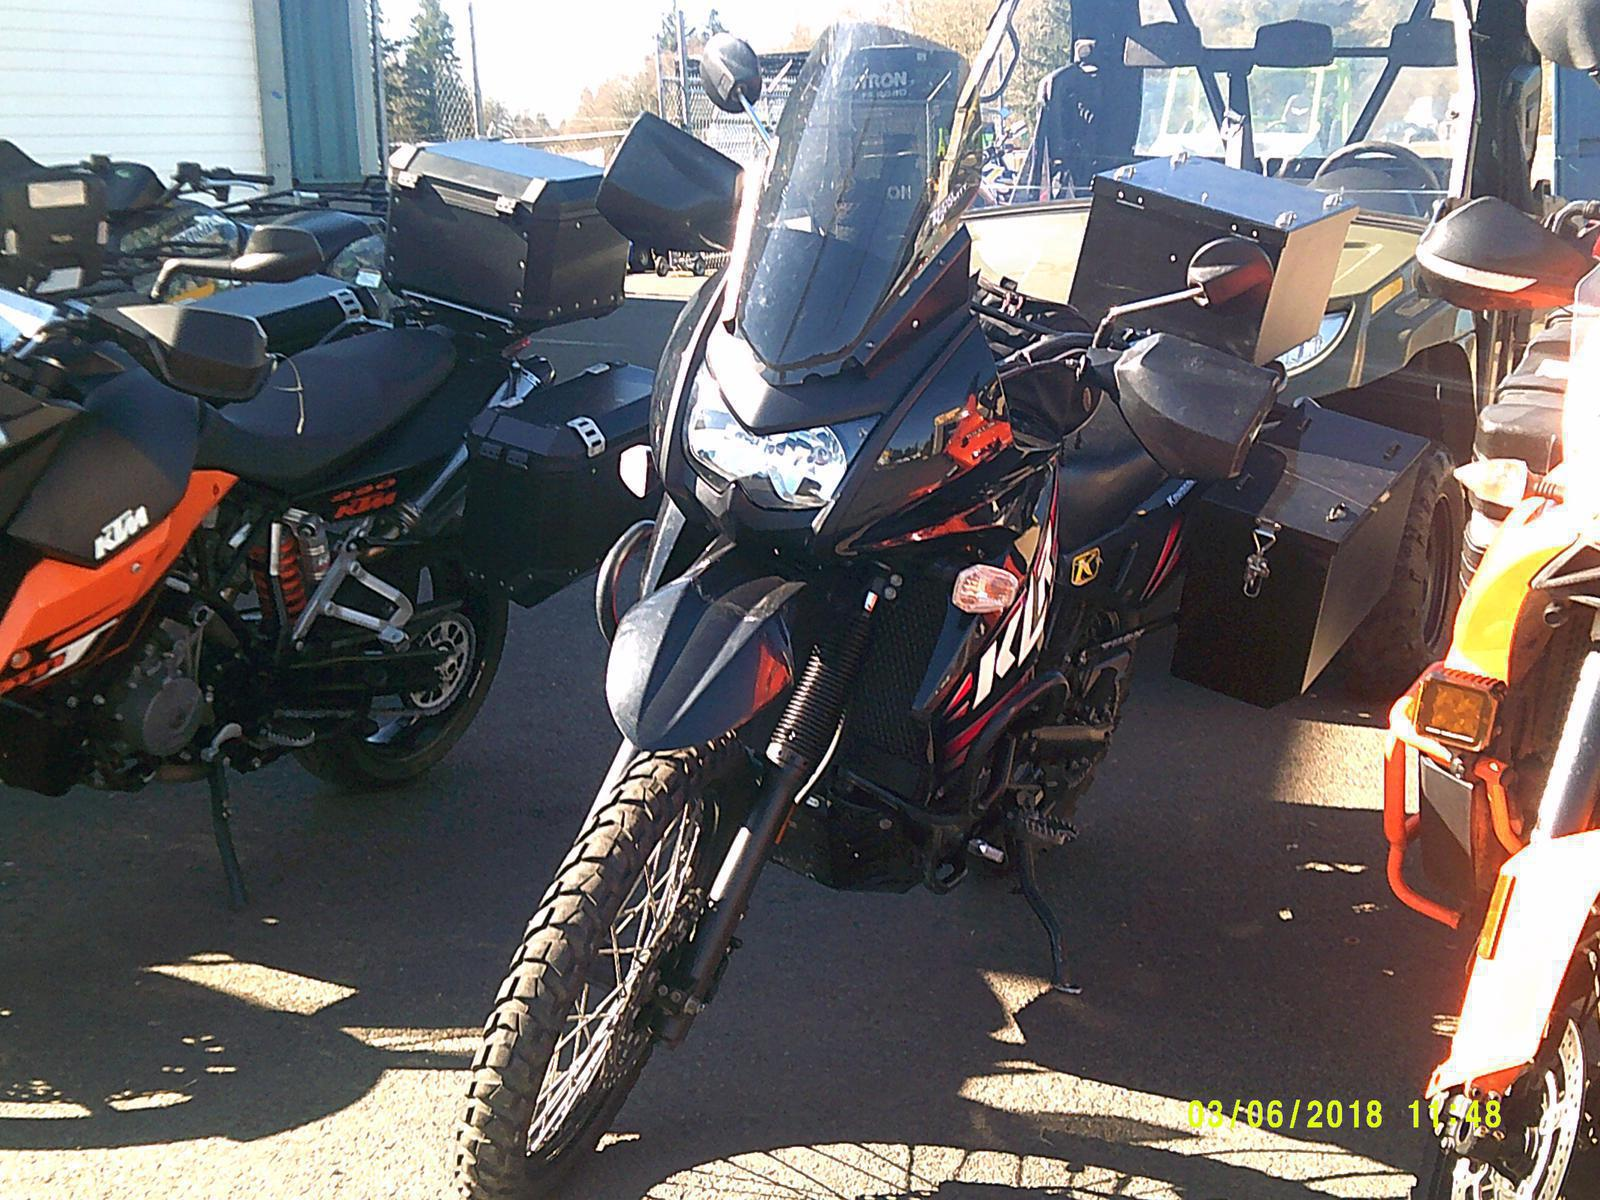 2013 Kawasaki KLR™ 650 for sale in Warrenton, OR | L & D RACE TECH ...